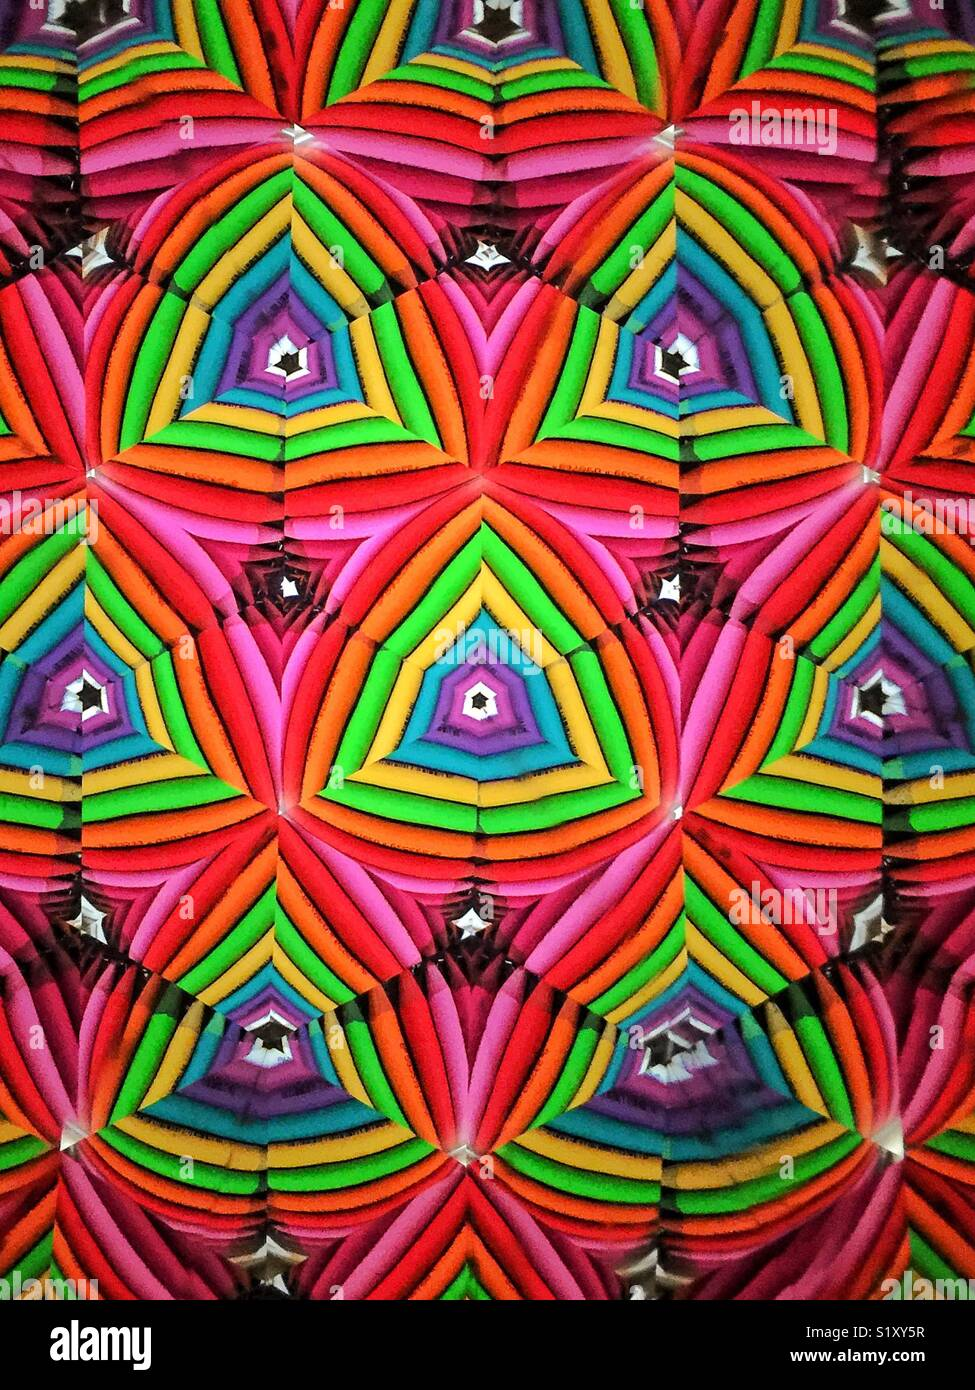 colored pencils in rainbow colors as seen through kaleidoscope - Stock Image